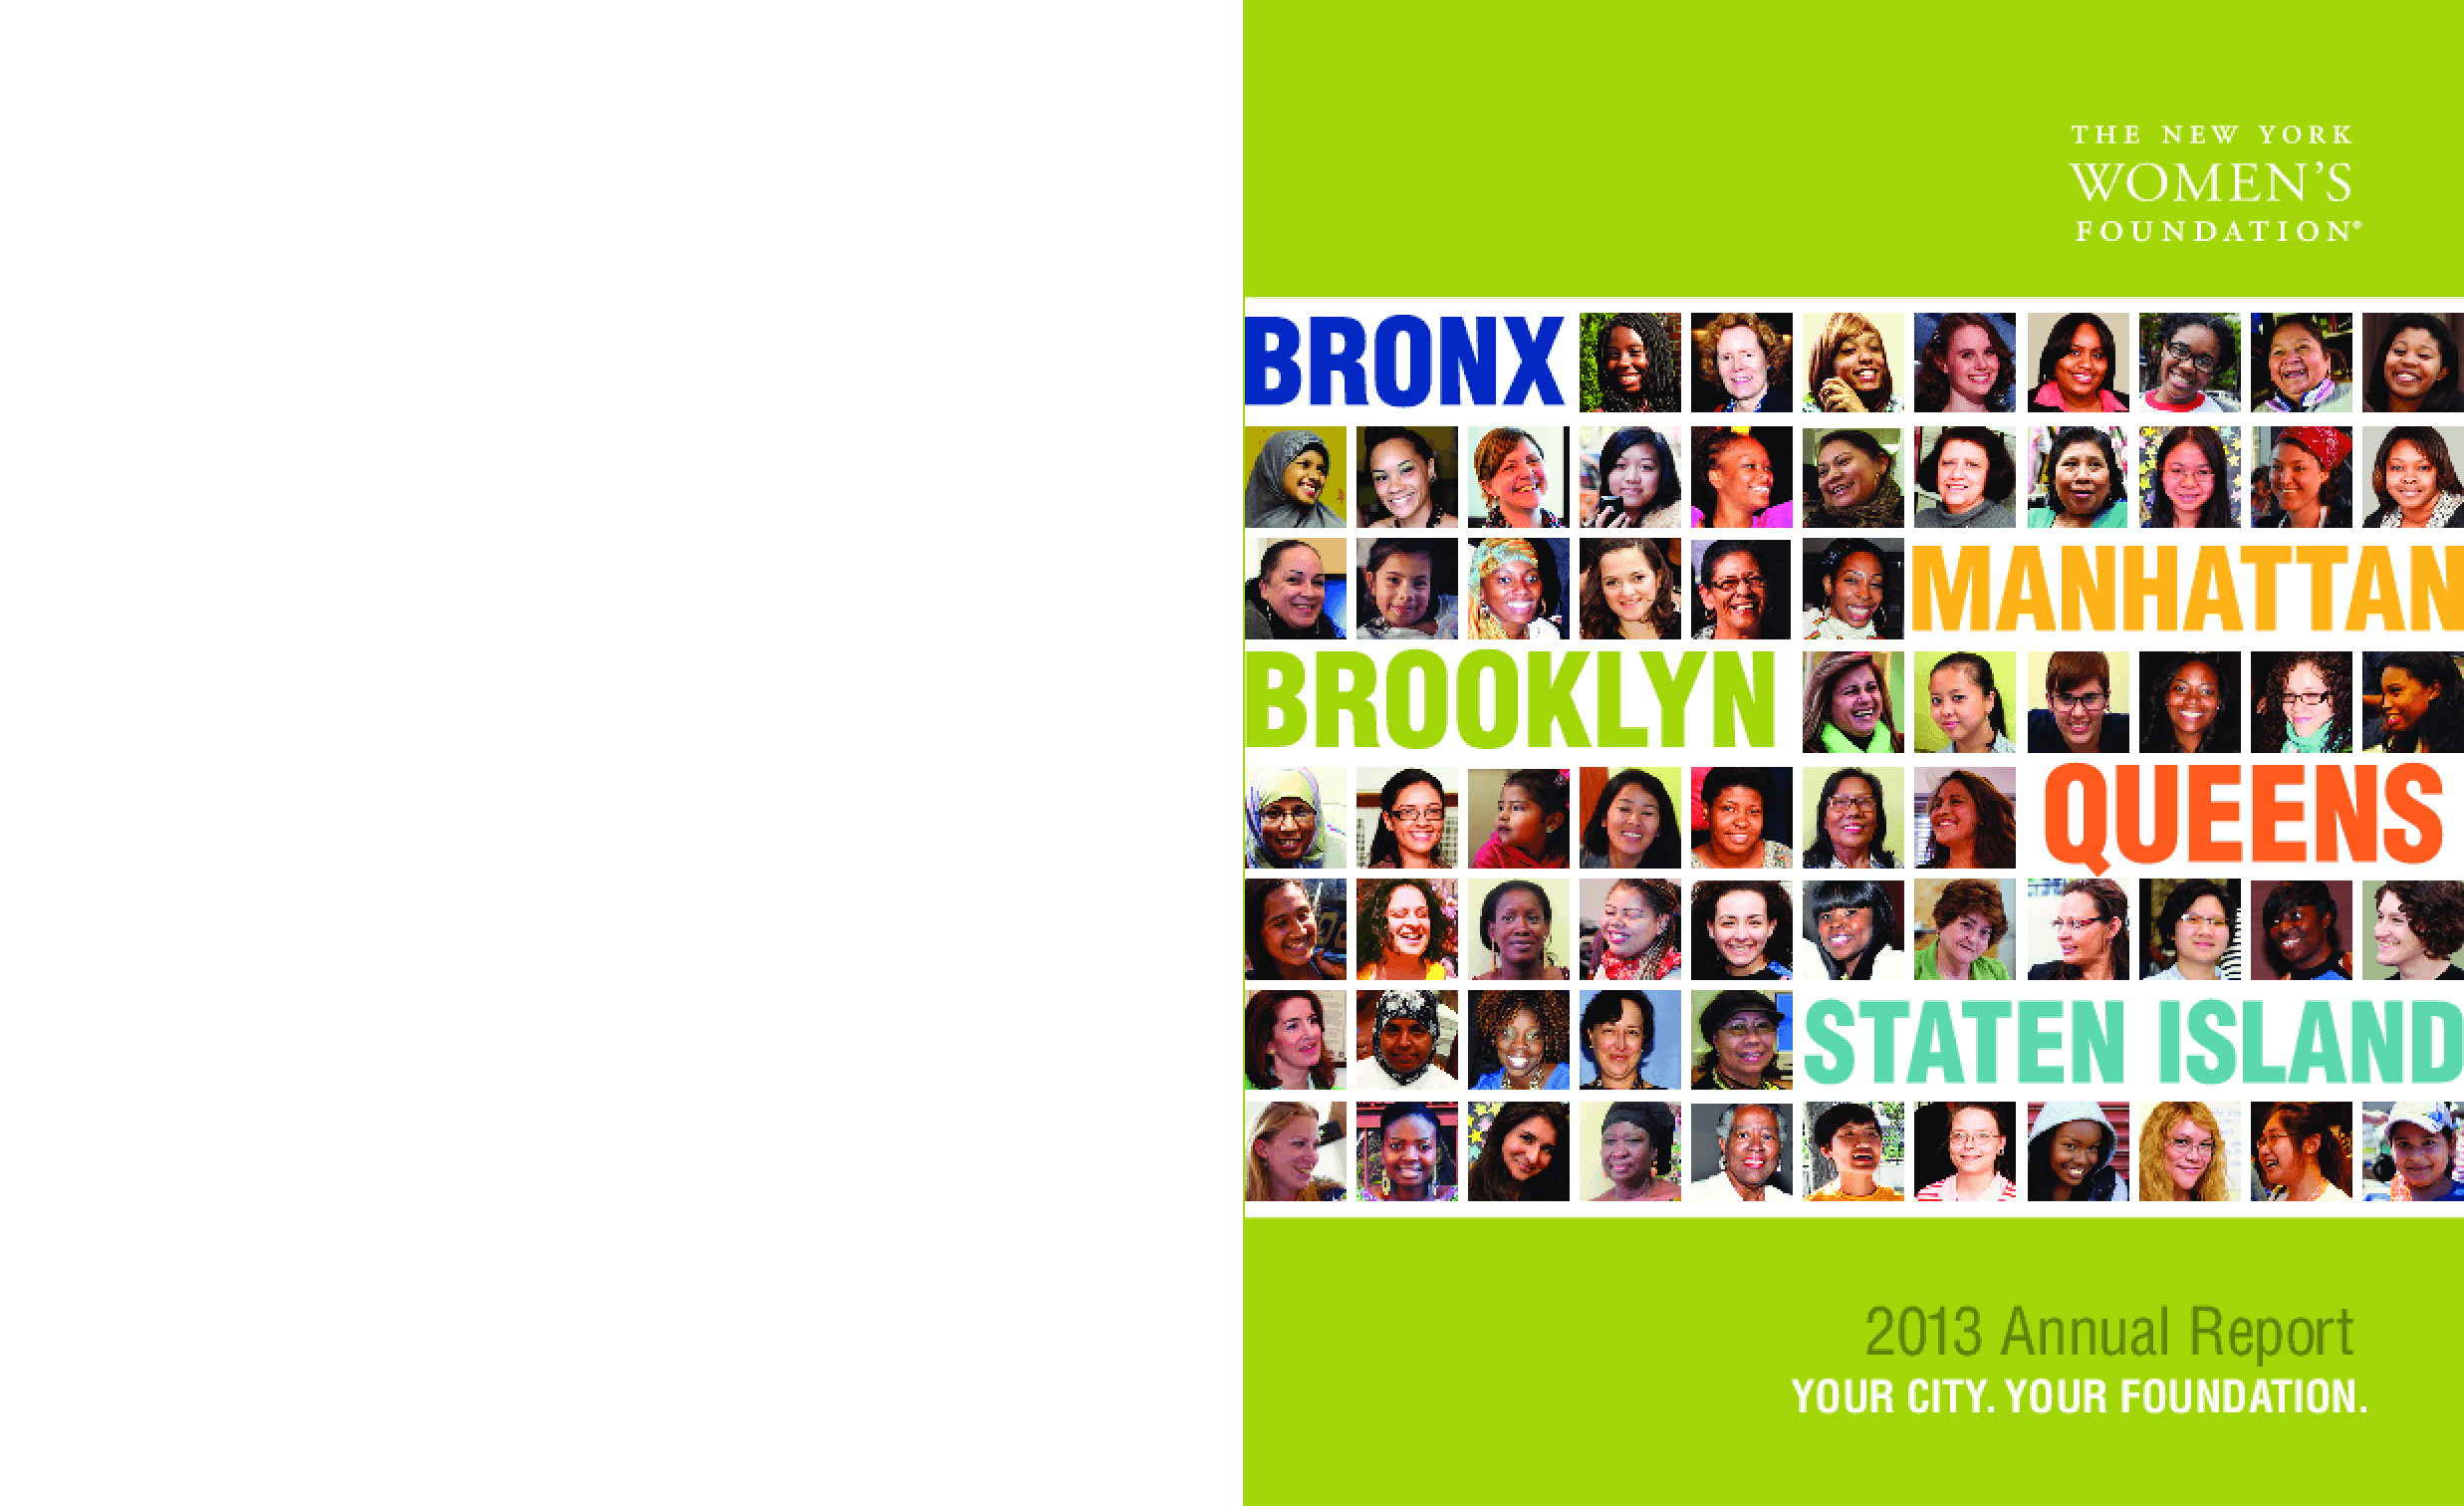 New York Women's Foundation, 2012 Annual Report